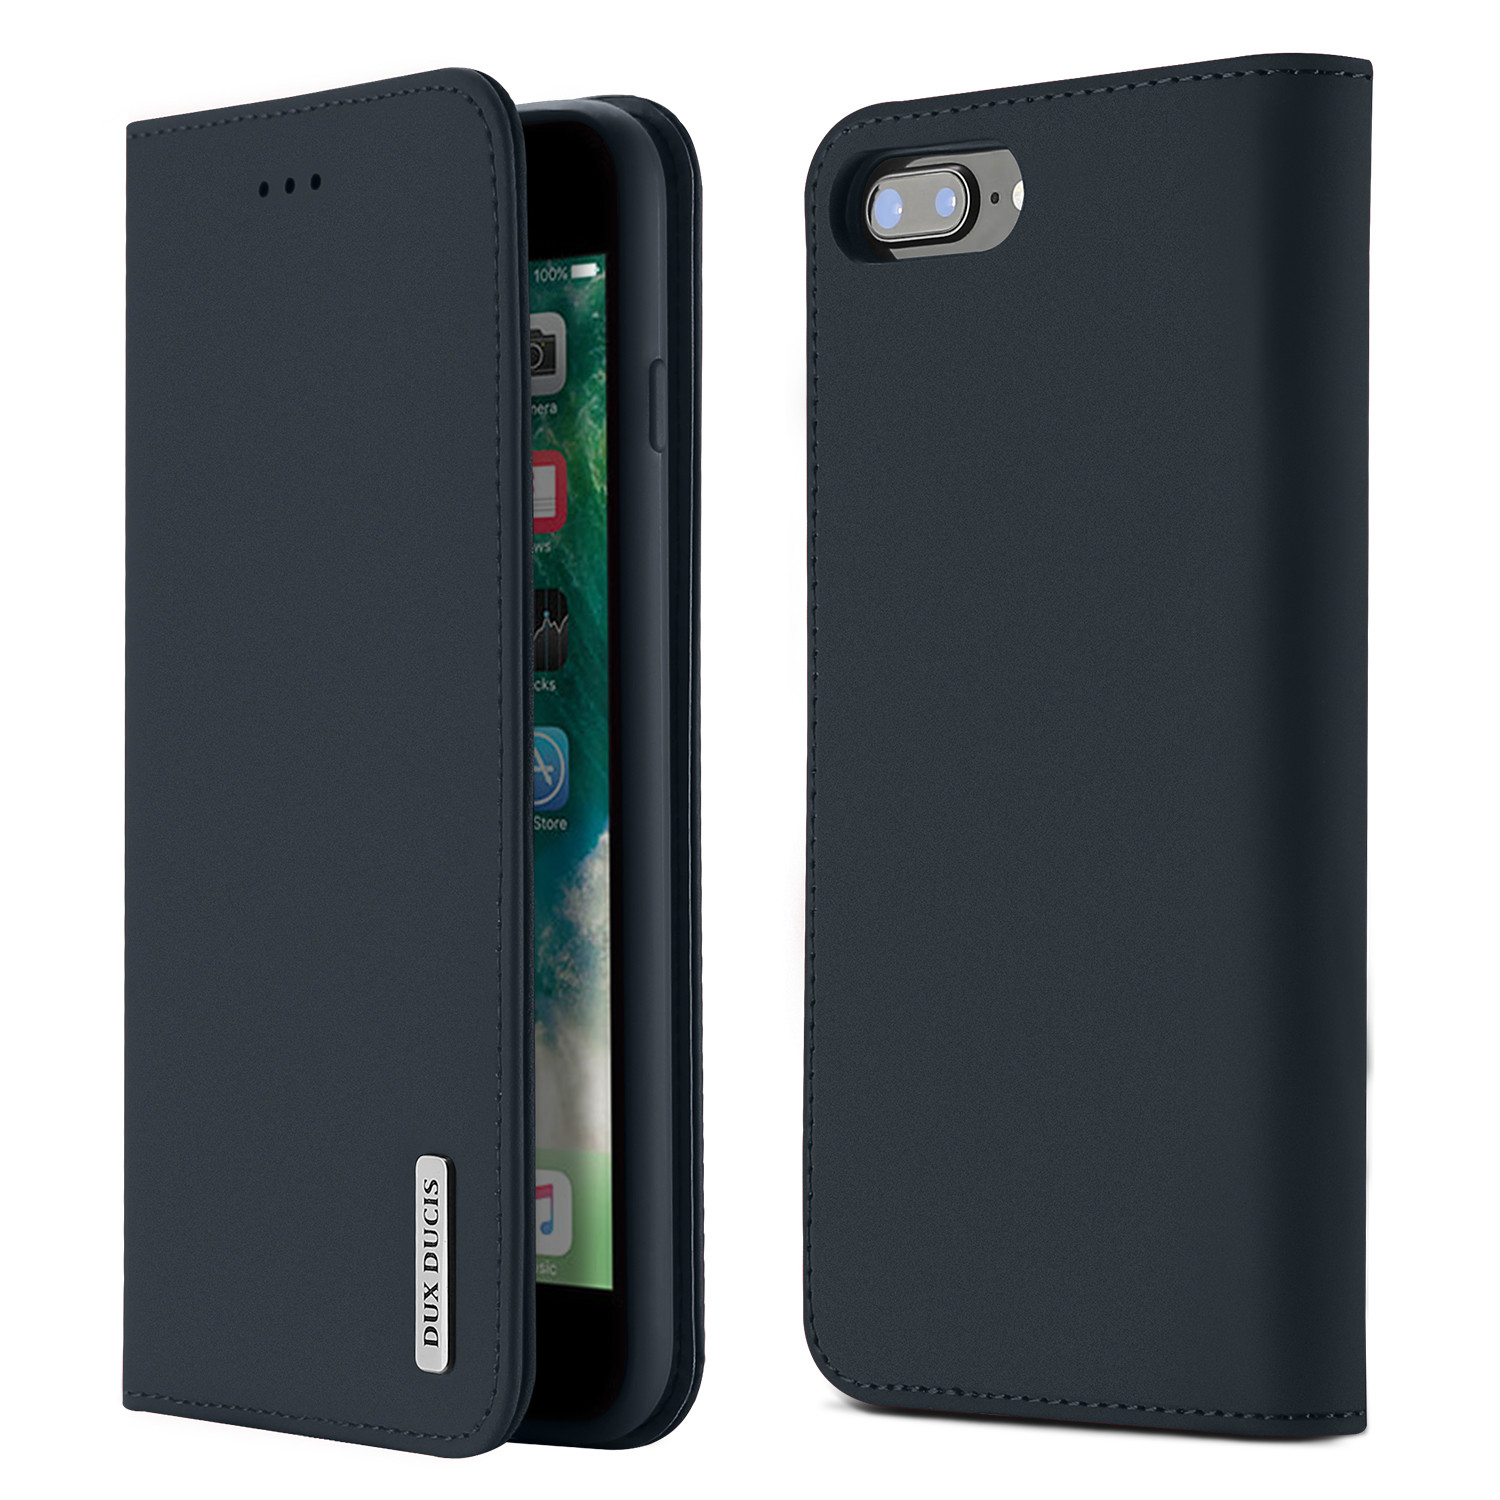 DUX DUCIS For iPhone 7 Plus/8Plus Luxury Genuine Leather Magnetic Flip Cover Full Protective Case with Bracket Card Slot blue